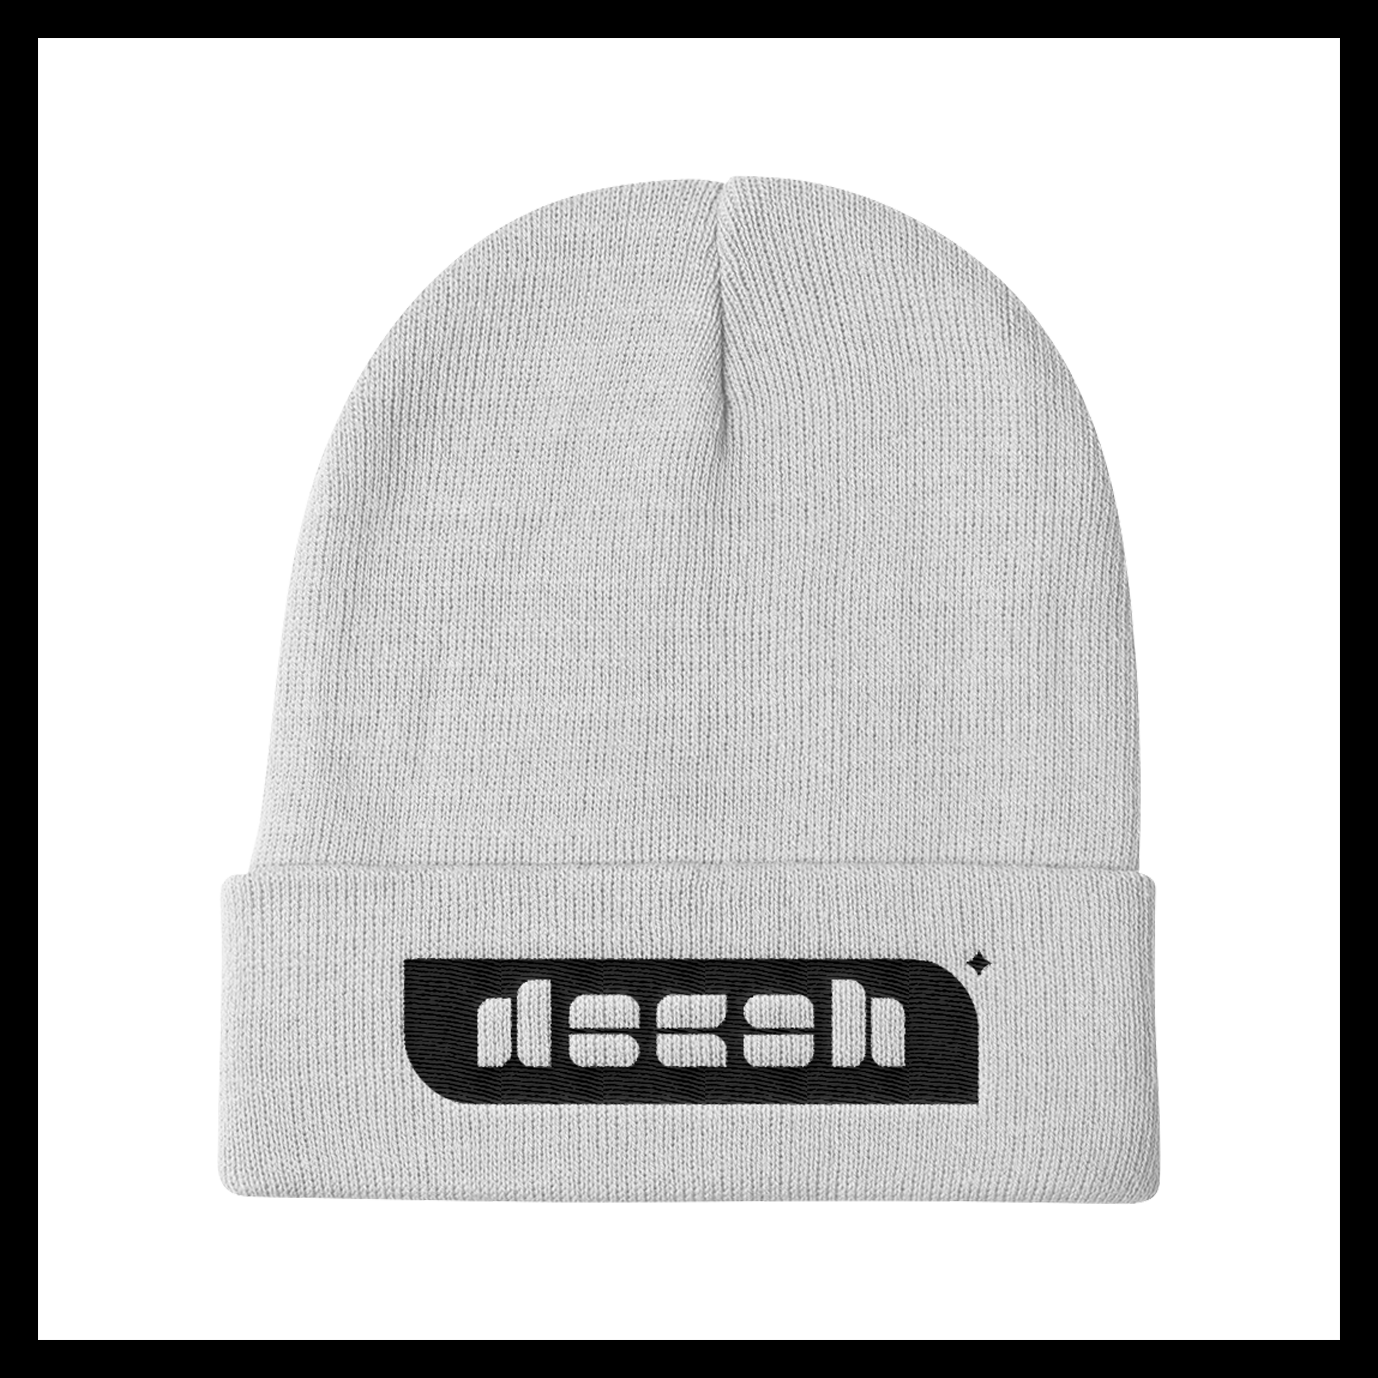 Image of decah Embroidered Beanie III